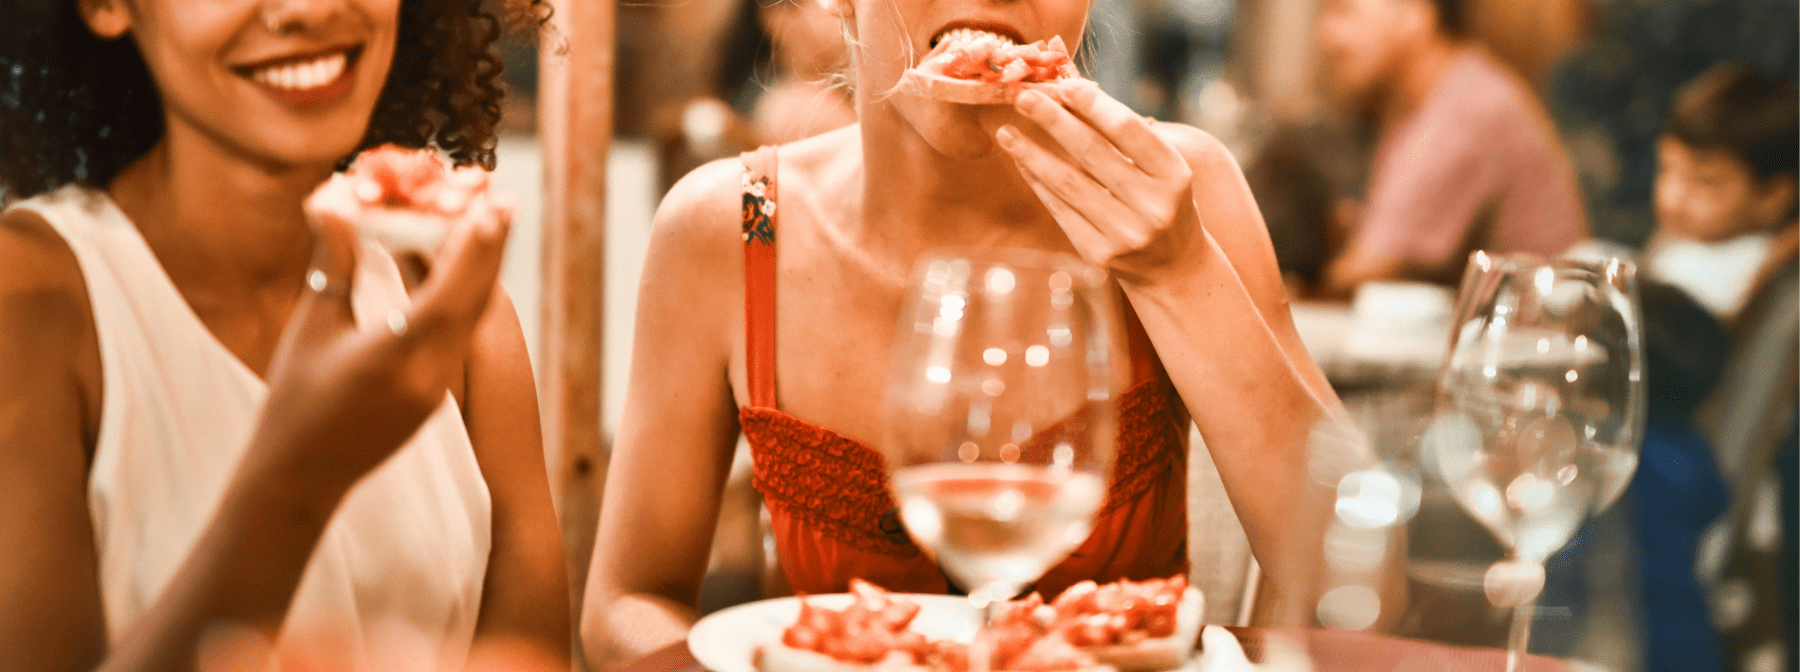 eating too quickly - bad habits that make you gain weight